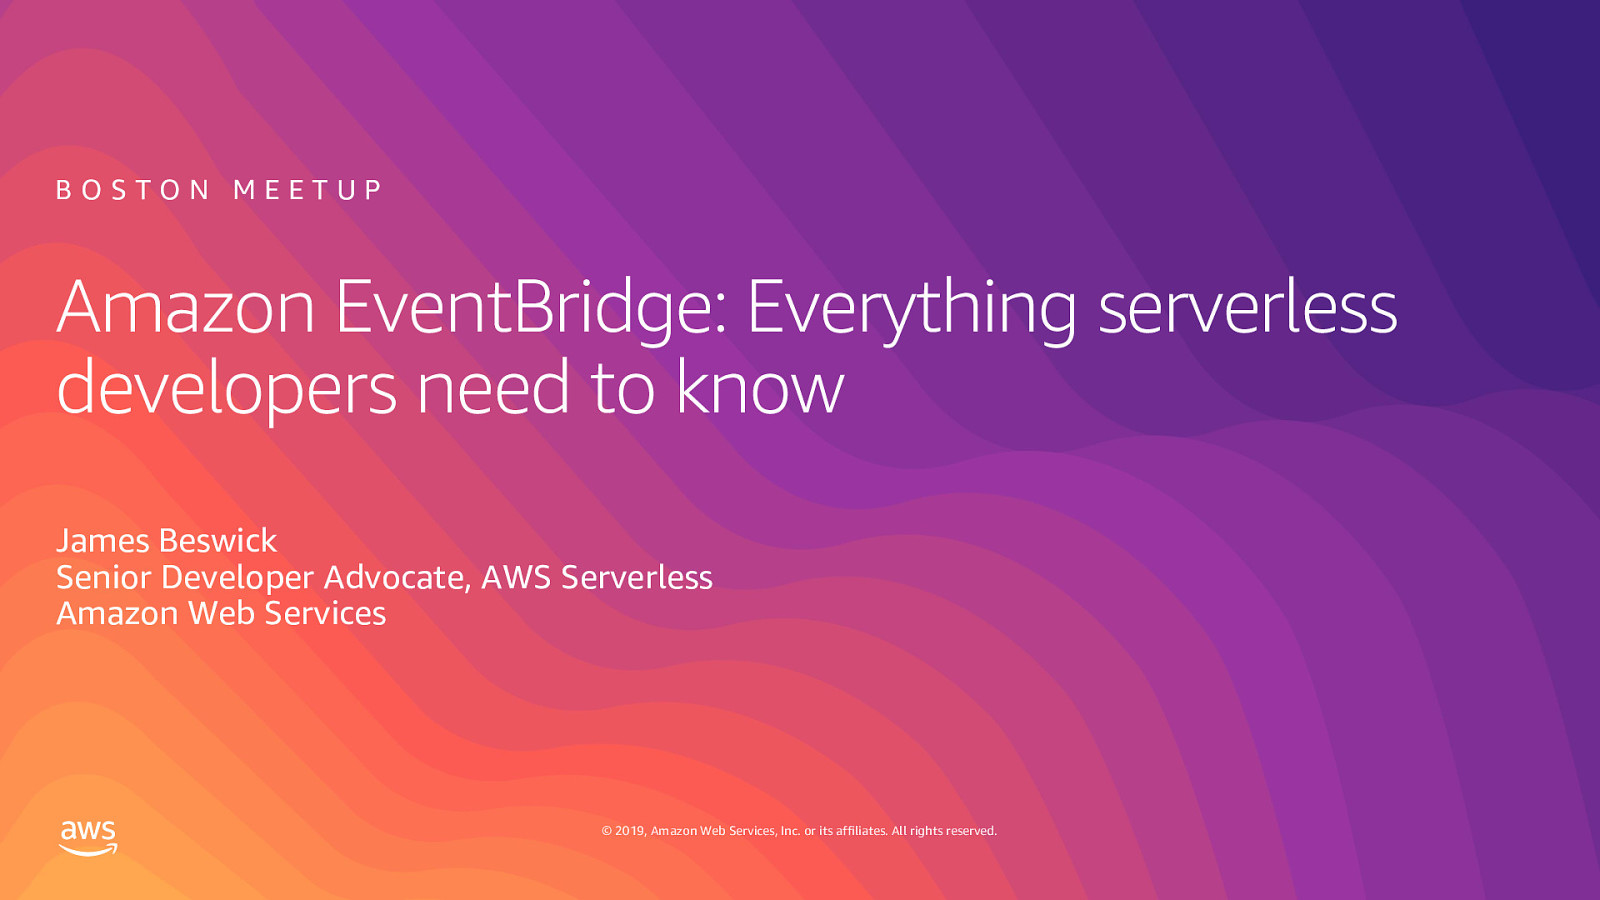 Amazon EventBridge: Everything serverless developers need to know